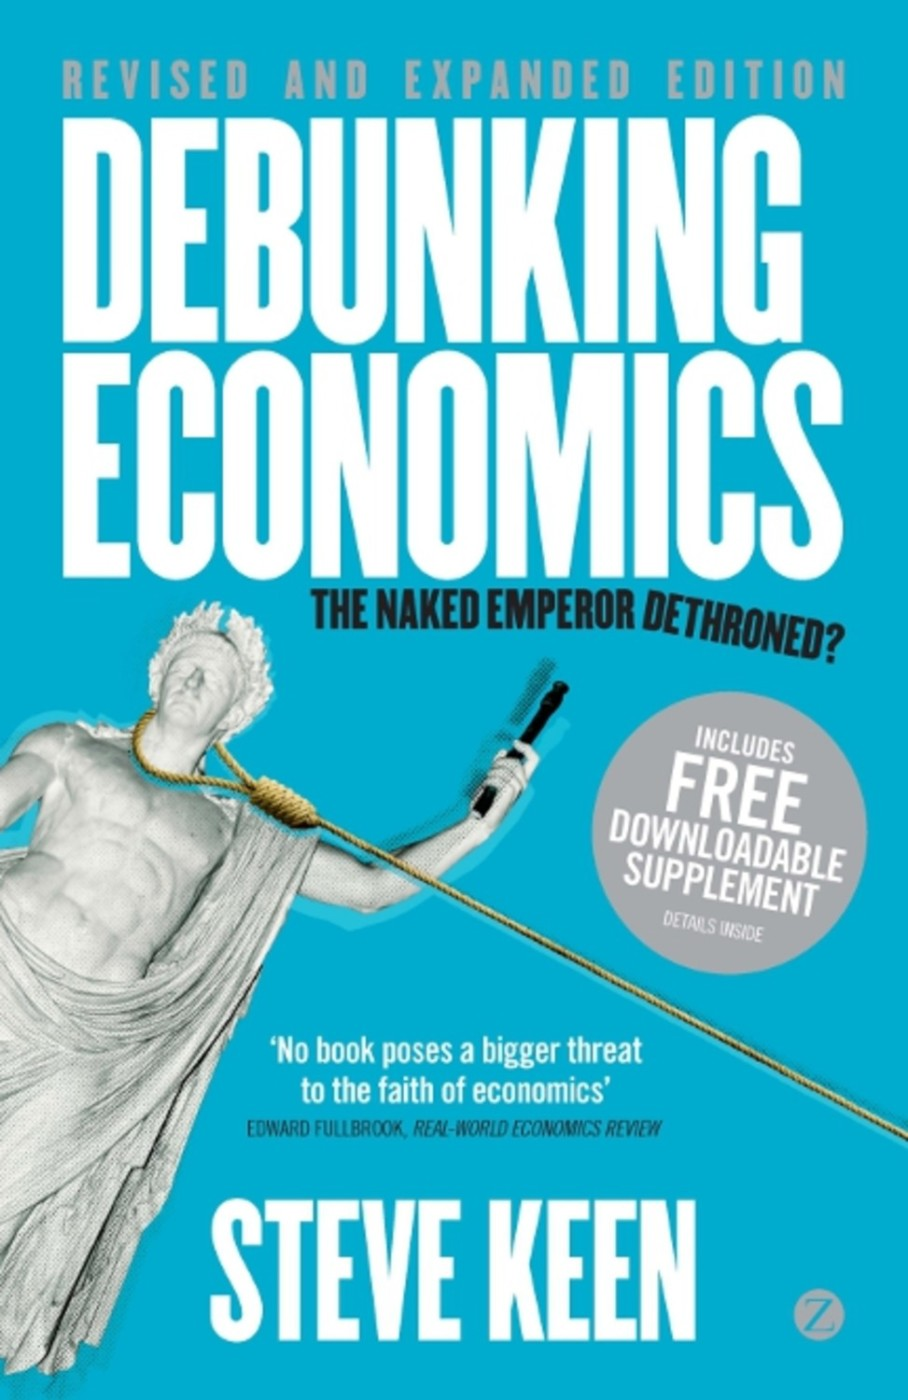 Steve Keen puts the axe to the roots of neoclassical thought. Very handy to question basic micro- and macro-economics courses. Click for pdf.